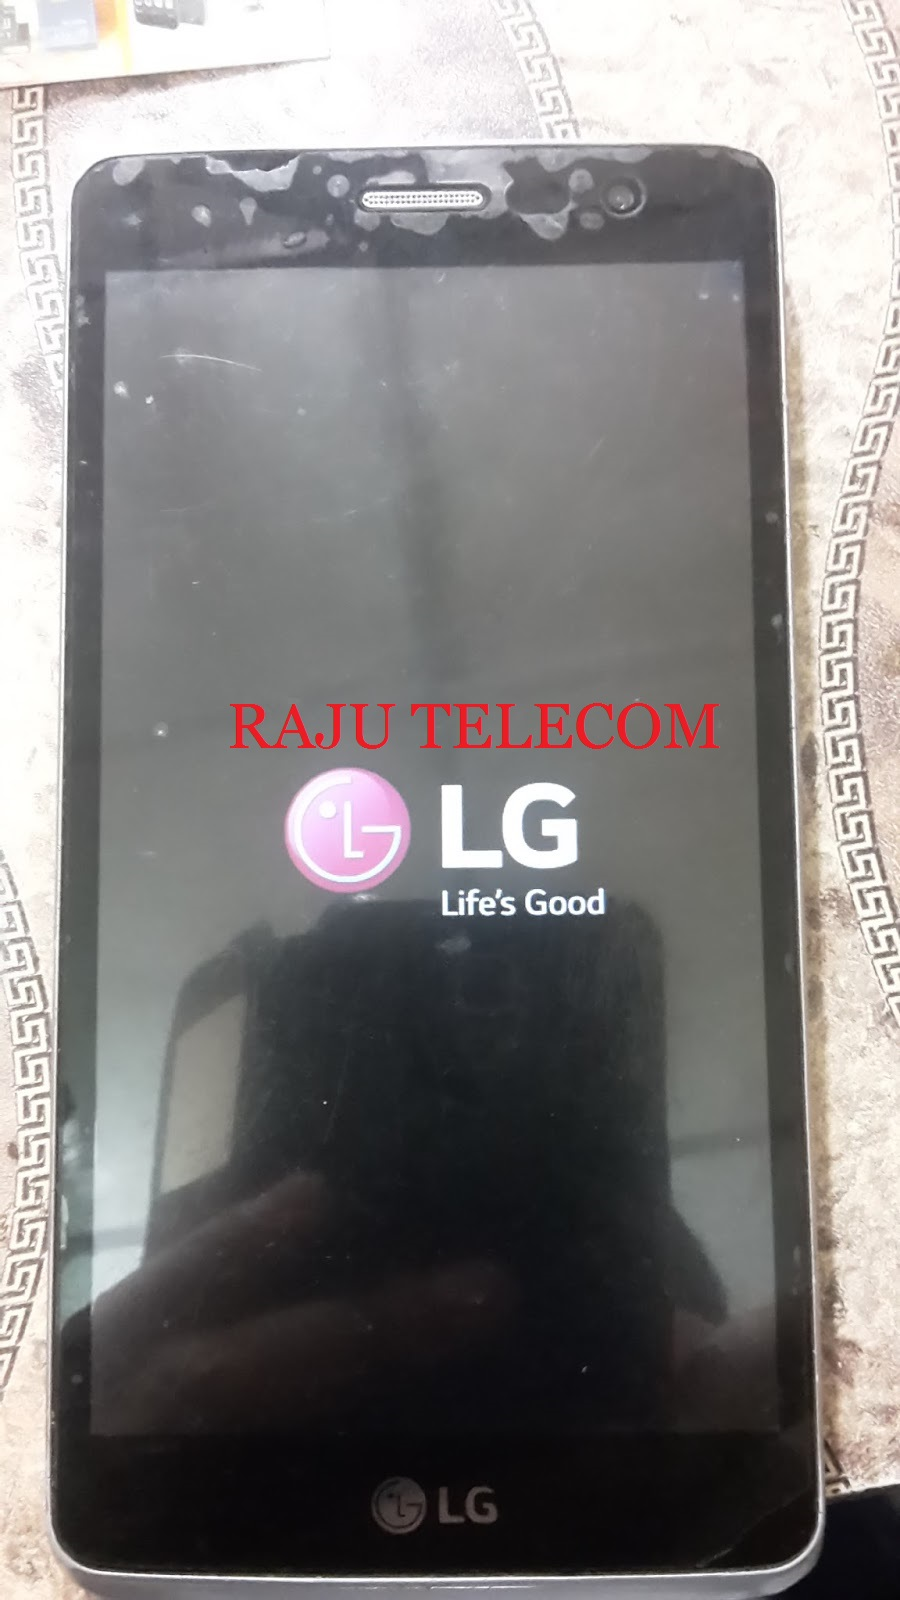 RAJU TELECOM* * *: LG V10 FLASH FILE MT6582 5 0 2 OFFICIAL